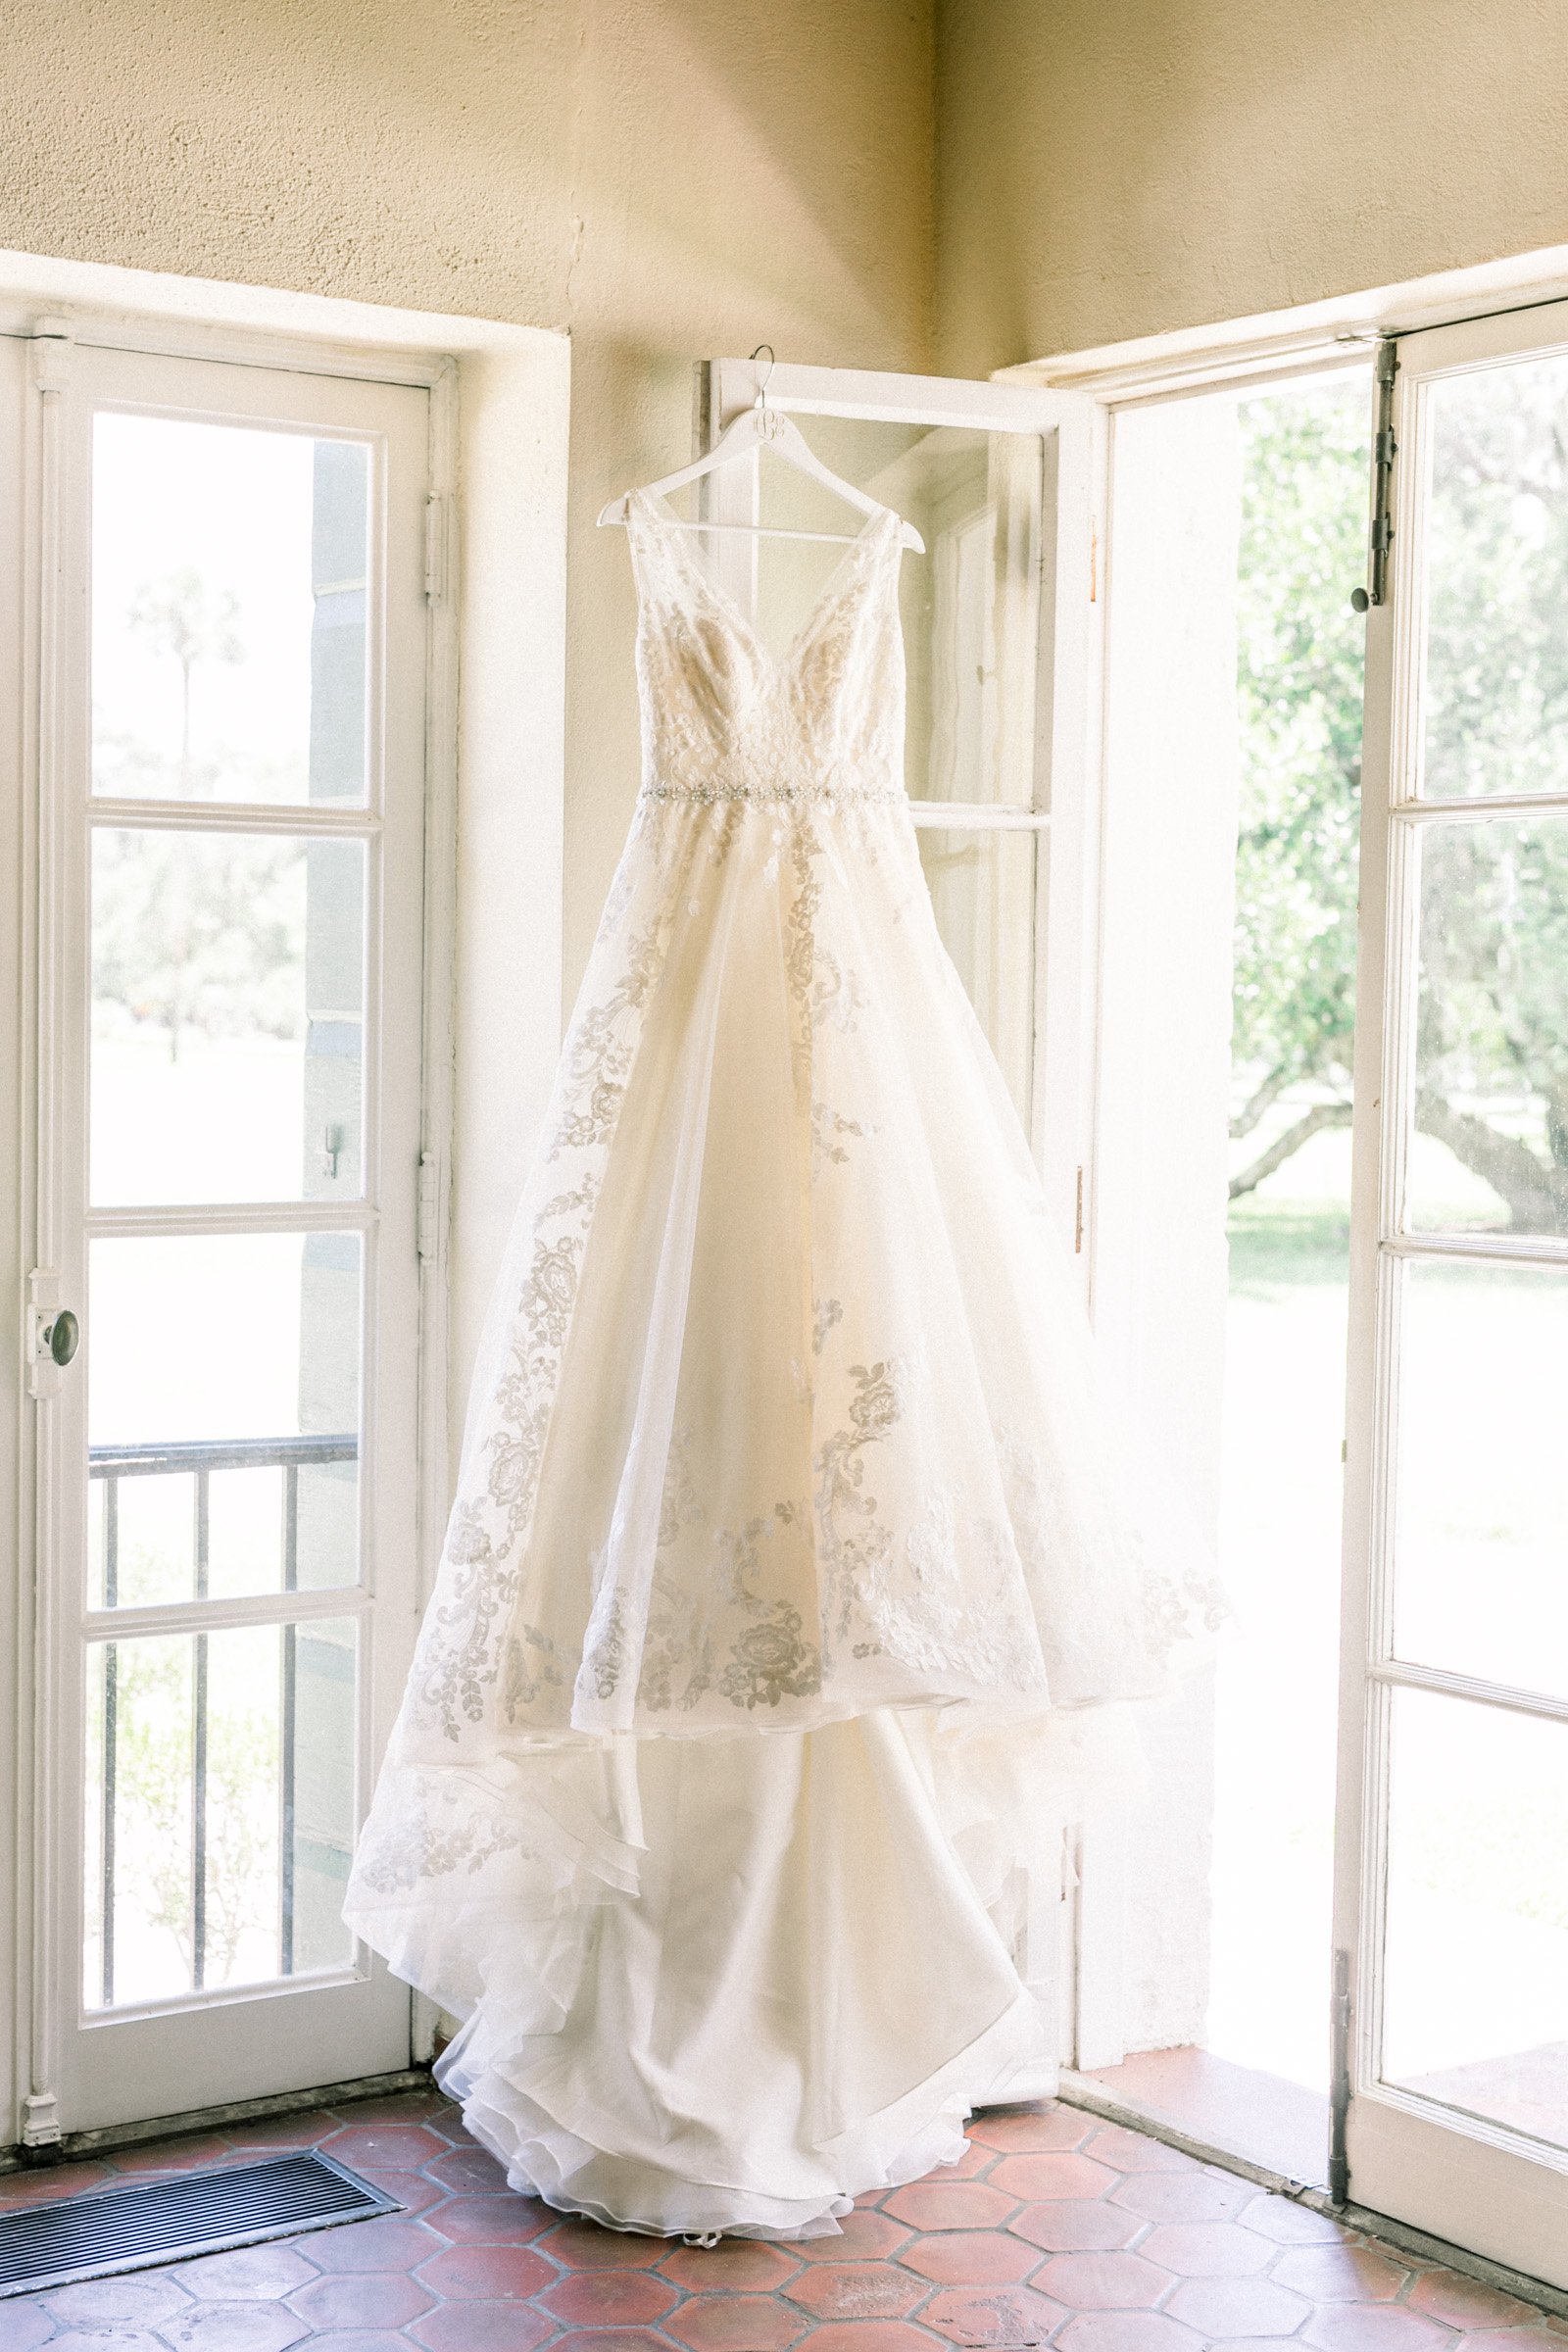 savannah wedding photographer katherine ives photography-3532.JPG